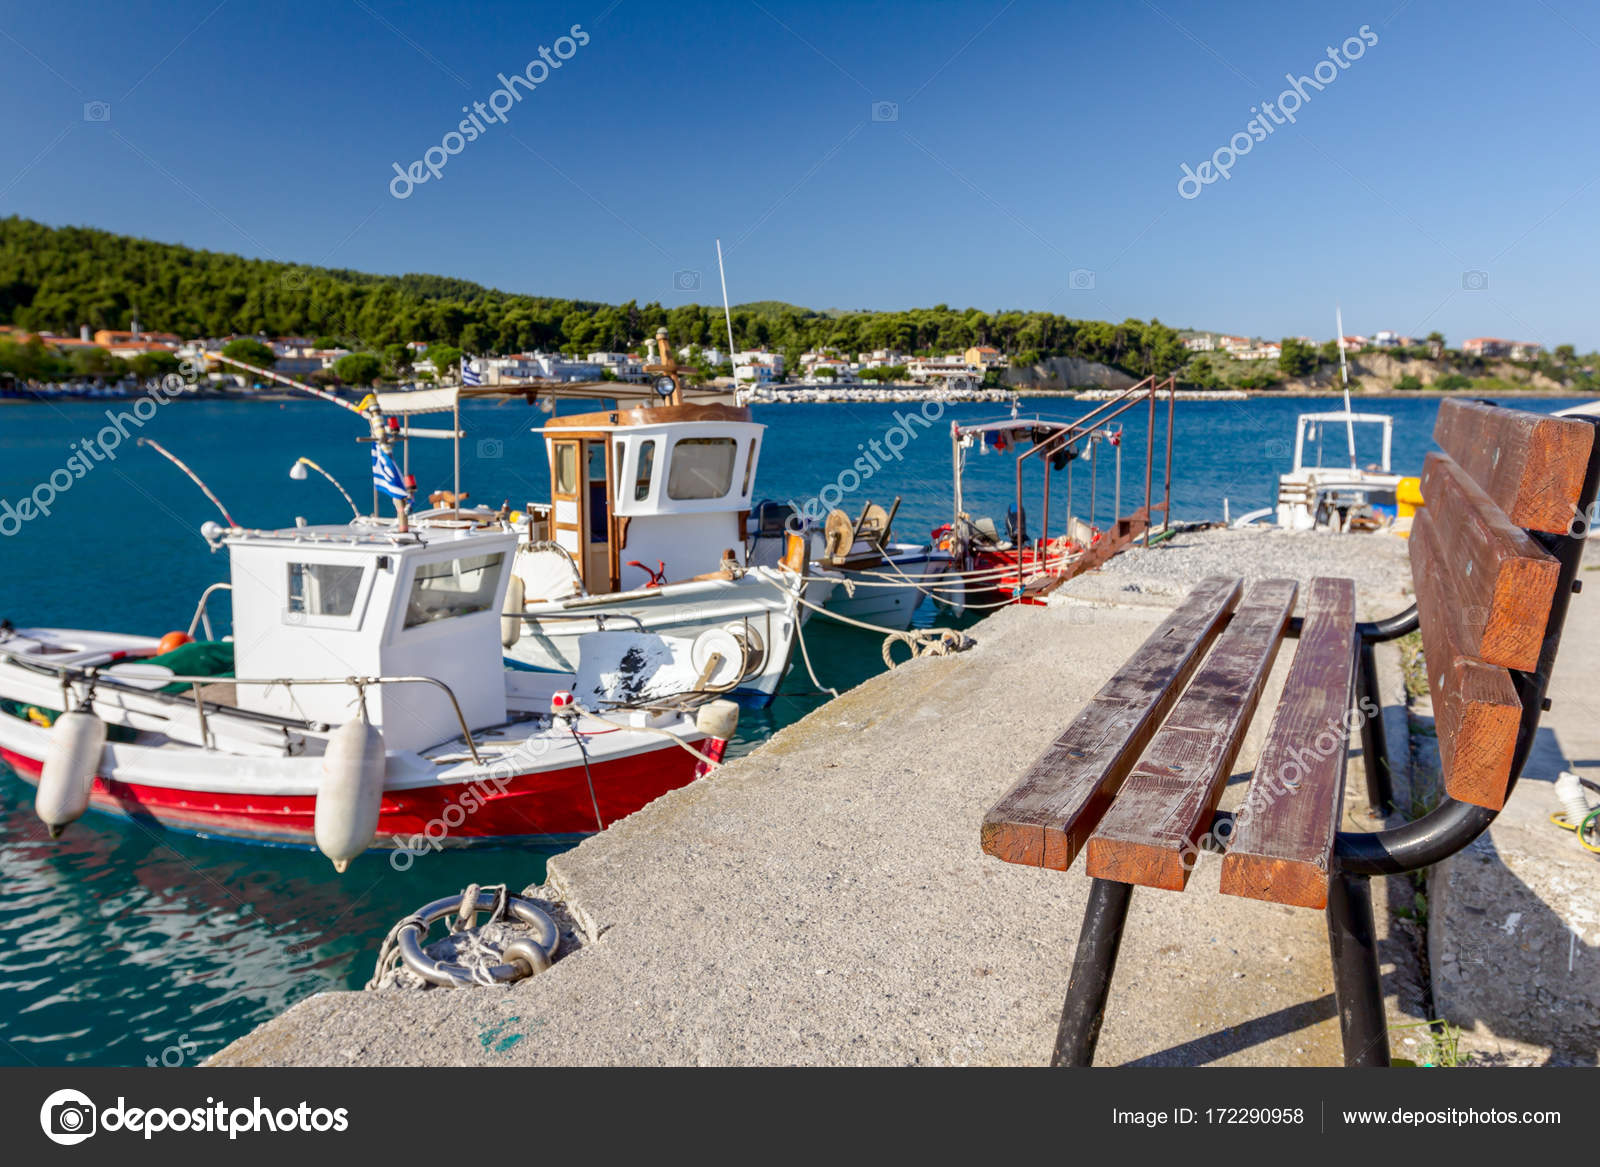 Pleasant Empty Wooden Bench At Boat Dock With Beautiful Docked Evergreenethics Interior Chair Design Evergreenethicsorg